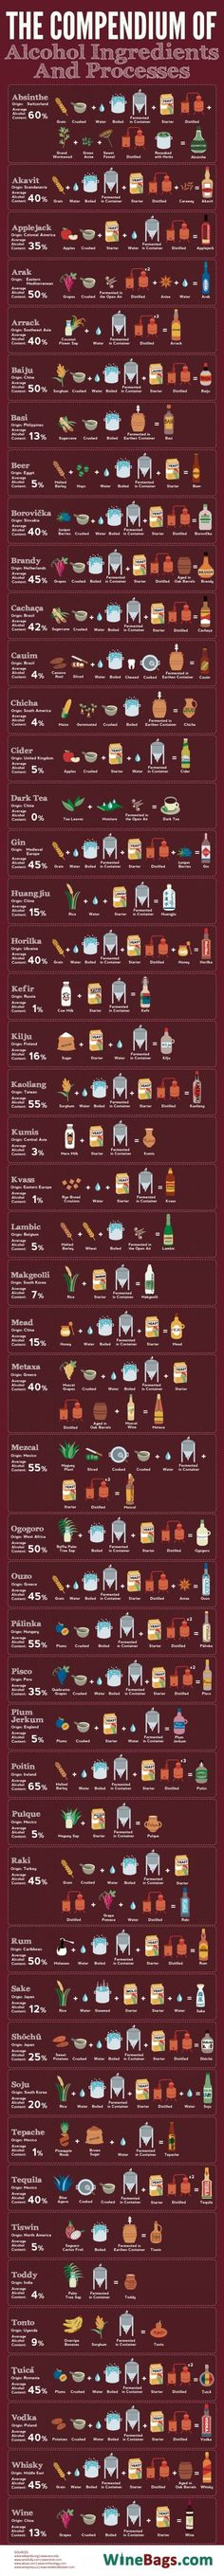 Use This Beer Color Chart For The Right Standard Reference Method